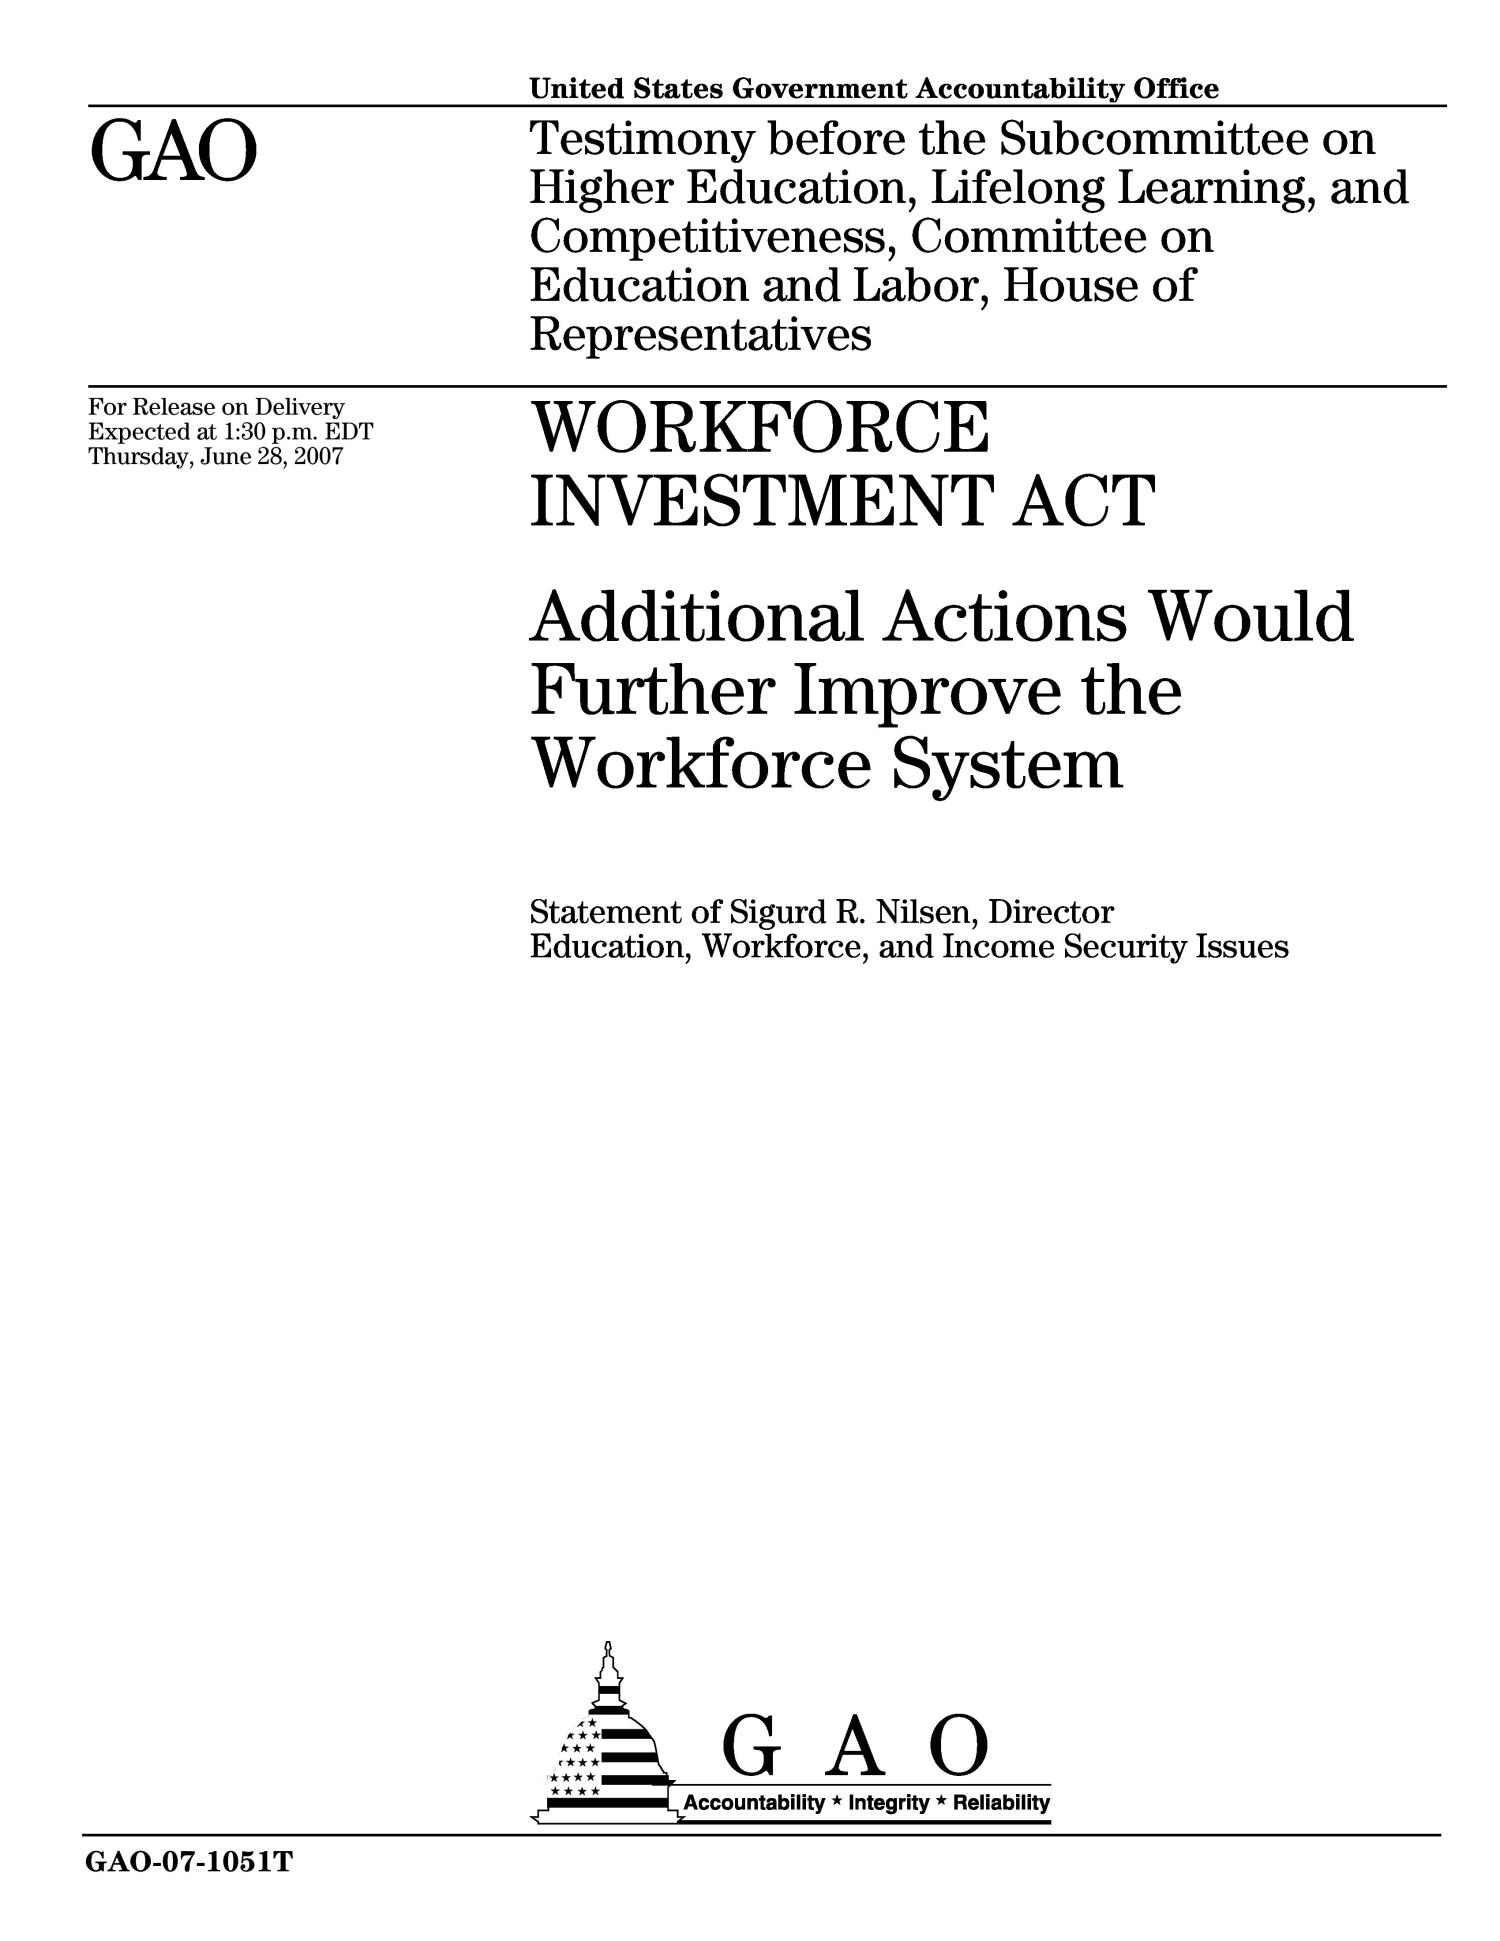 Workforce Investment Act: Additional Actions Would Further Improve the Workforce System                                                                                                      [Sequence #]: 1 of 28